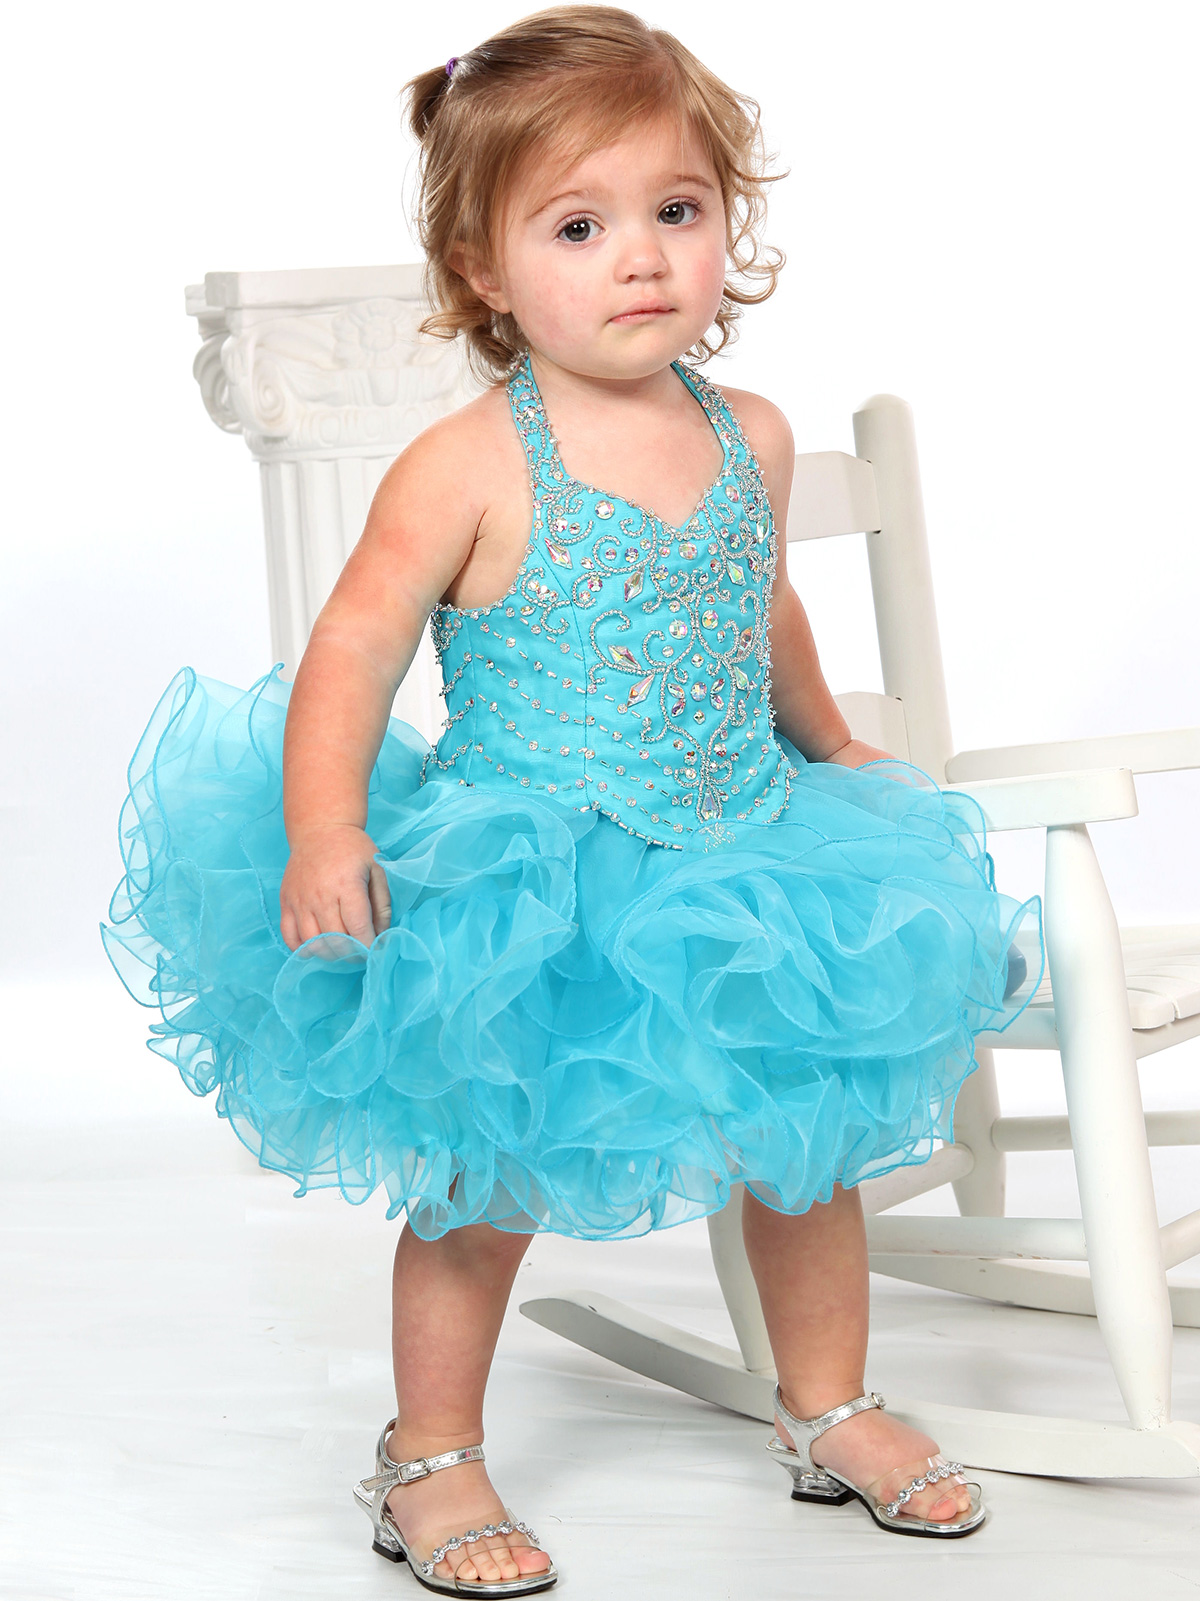 Baby Girl Blue Dress Shoes